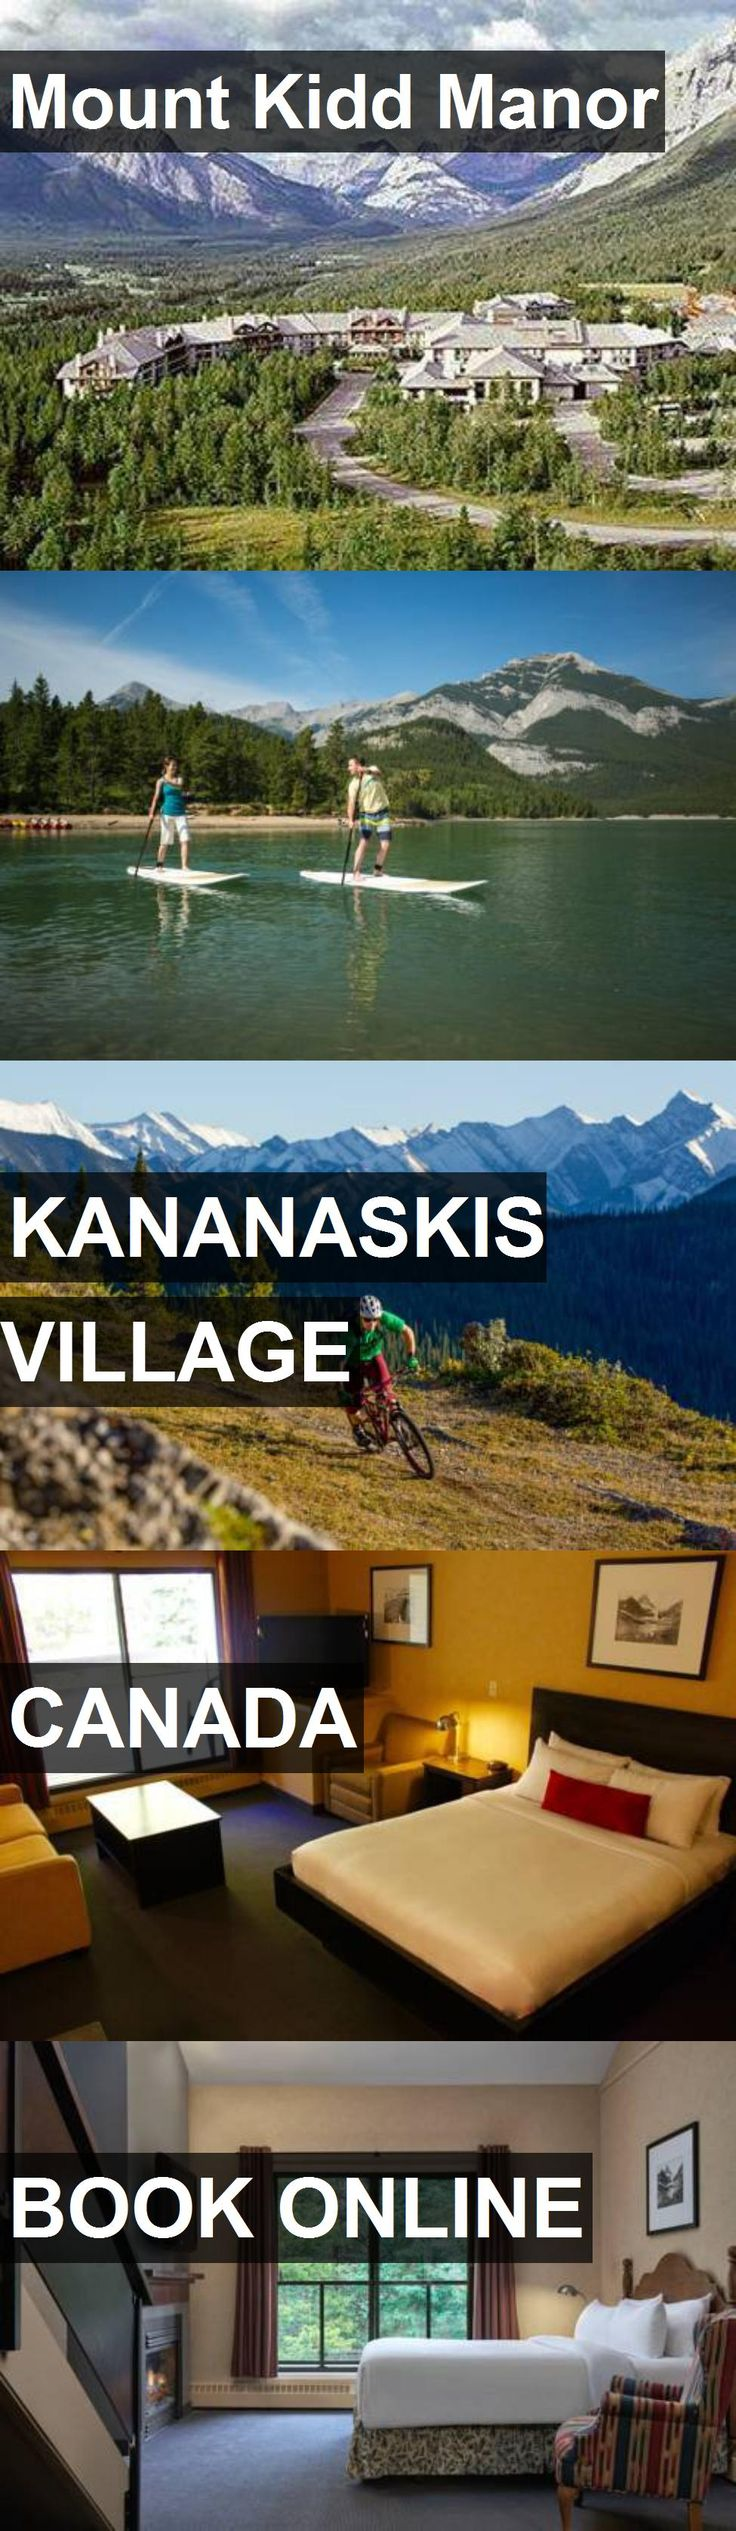 Hotel Mount Kidd Manor in Kananaskis Village, Canada. For more information, photos, reviews and best prices please follow the link. #Canada #KananaskisVillage #travel #vacation #hotel